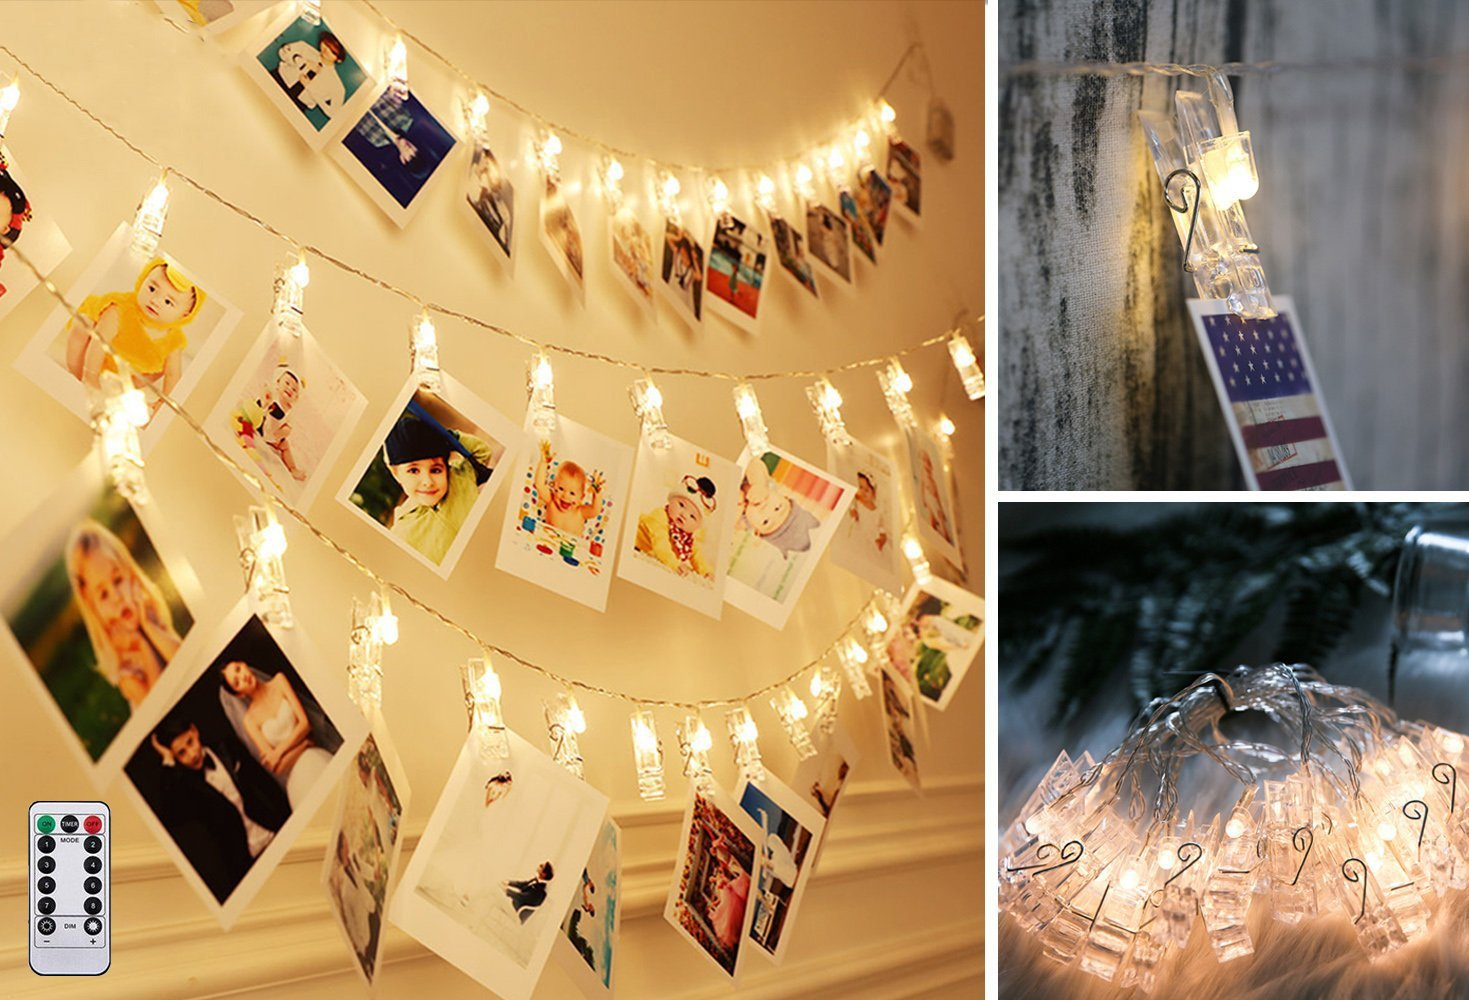 Photo Clips String Lights 40 LED Battery Operated Starry Fairy Lights For Valentine's Day Decoratio Hanging Photos Pictures Notes Artwork for Wedding Birthday Party Wall DIY Warm White(Remote control